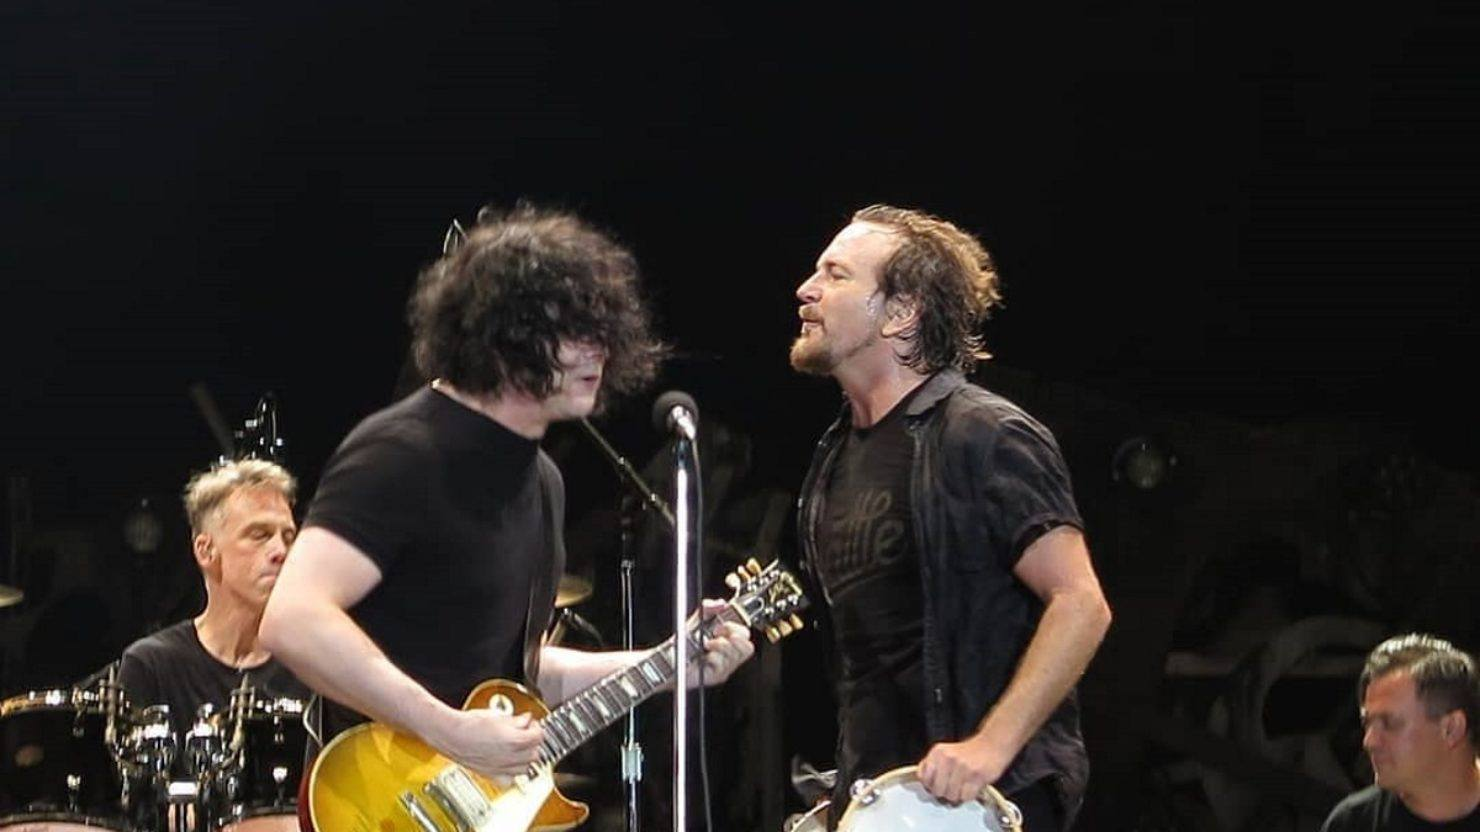 Jack White Guests With Pearl Jam In Portugal